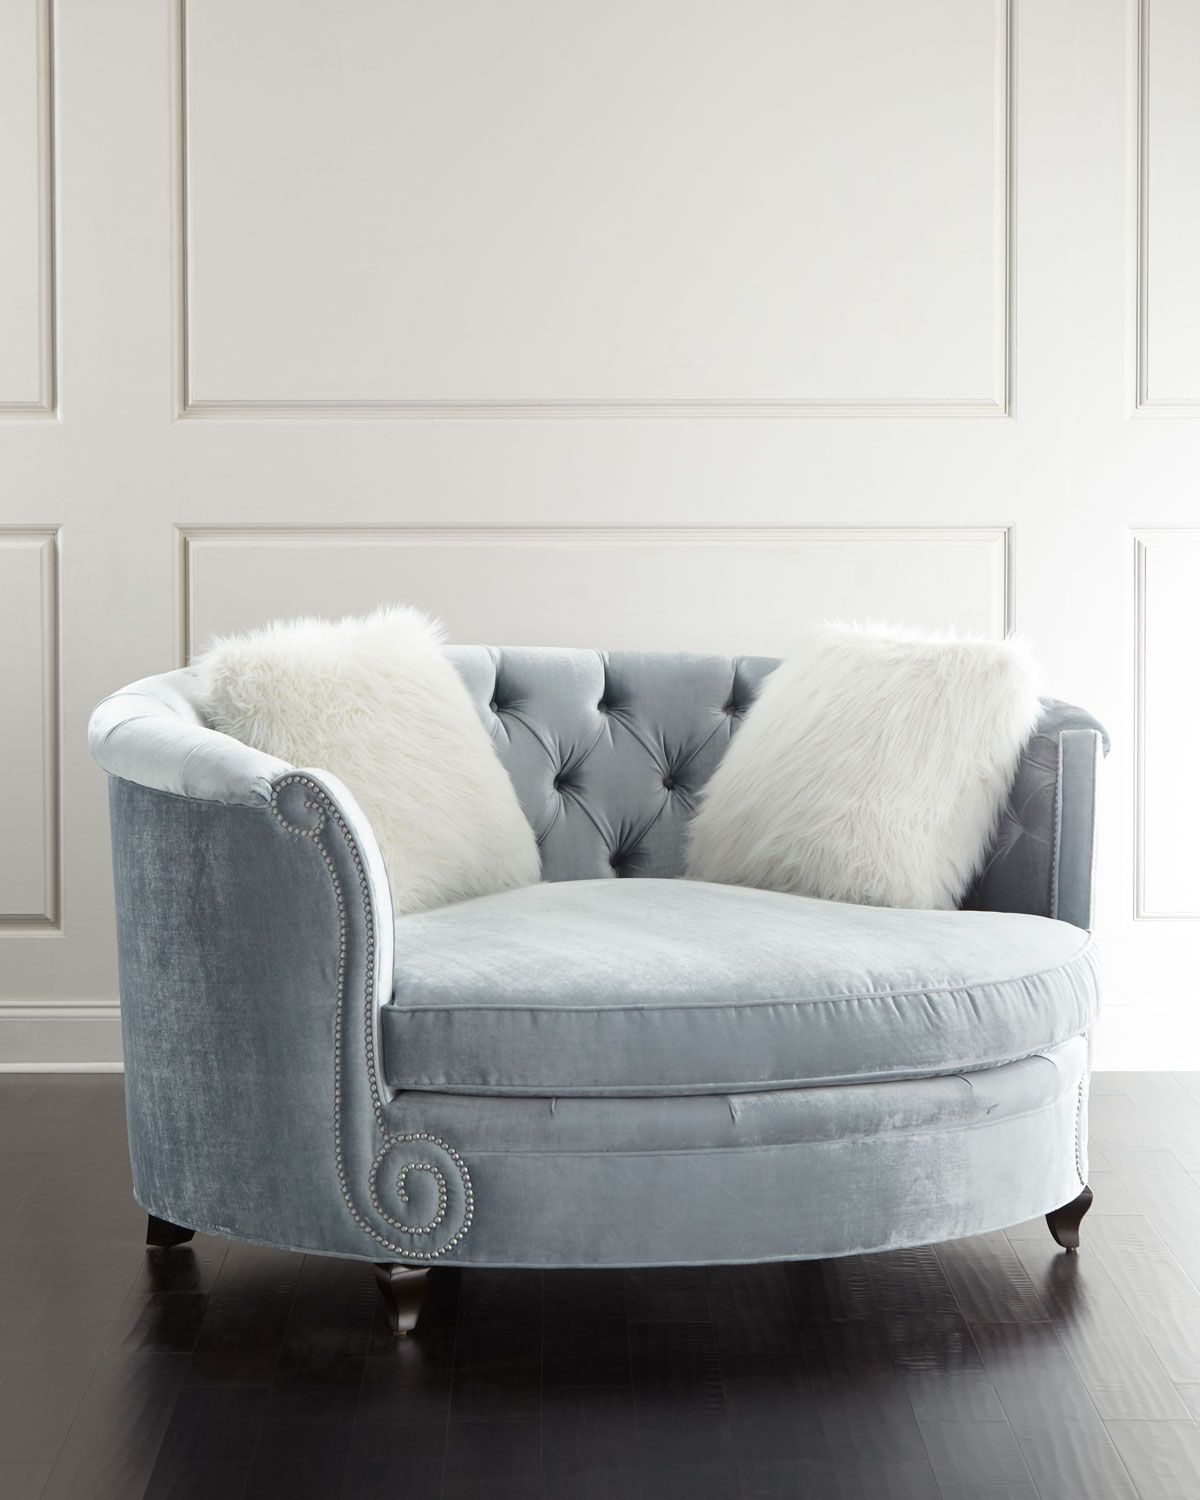 Harper Tufted Cuddle Chair | Hues Of Blues | Cuddle Chair, Furniture Inside Harper Down Oversized Sofa Chairs (View 5 of 25)